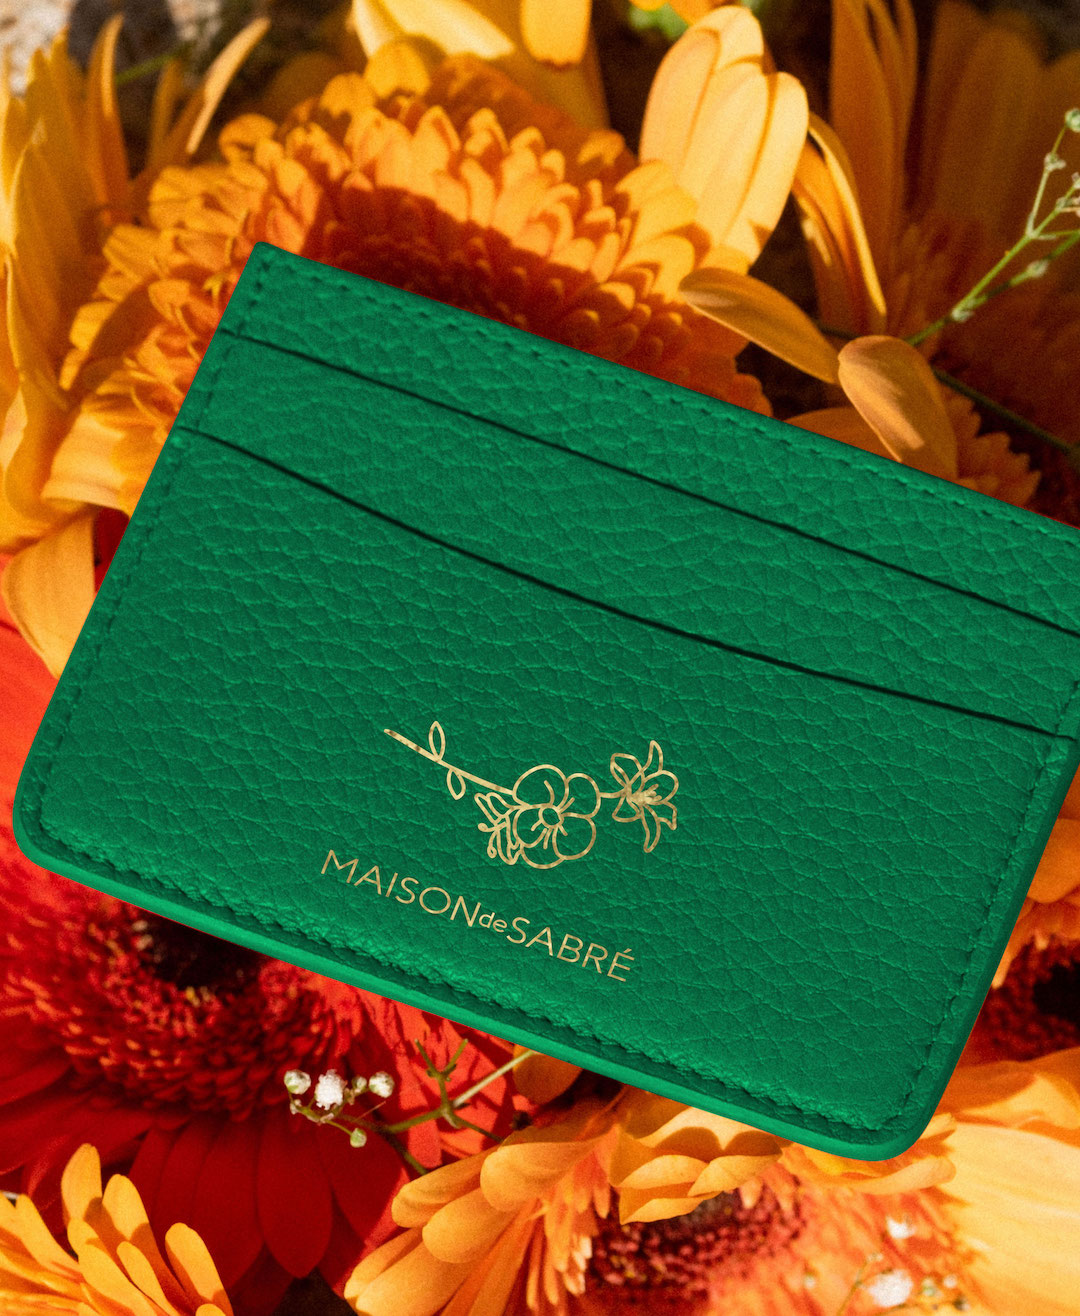 An emerald green cardholder lays on a bed of flowers.